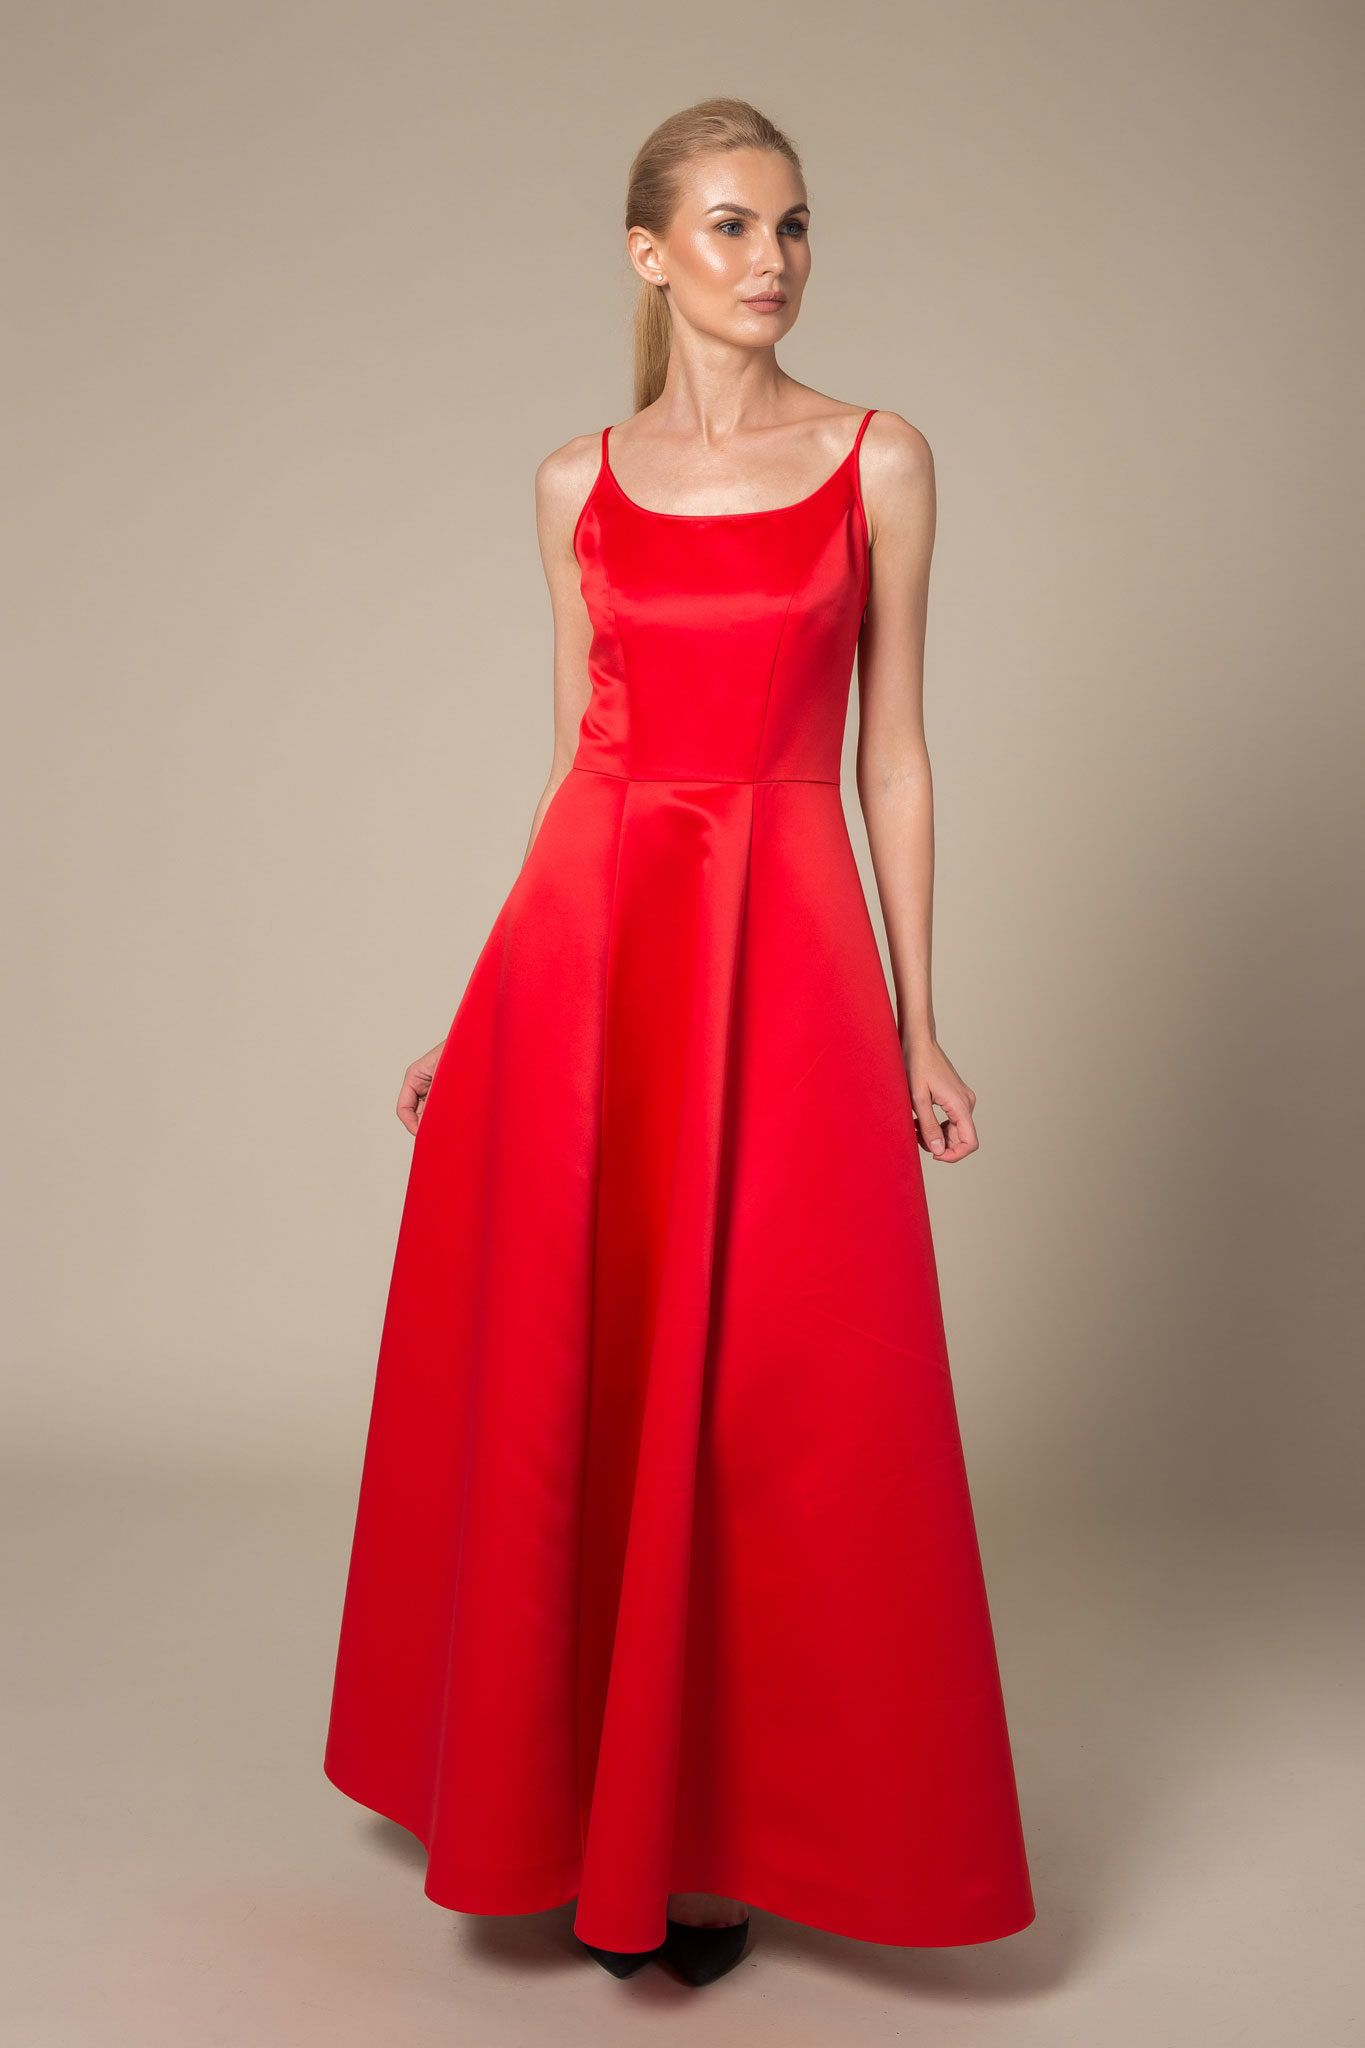 Red spaghetti strap dress with a scoop neck